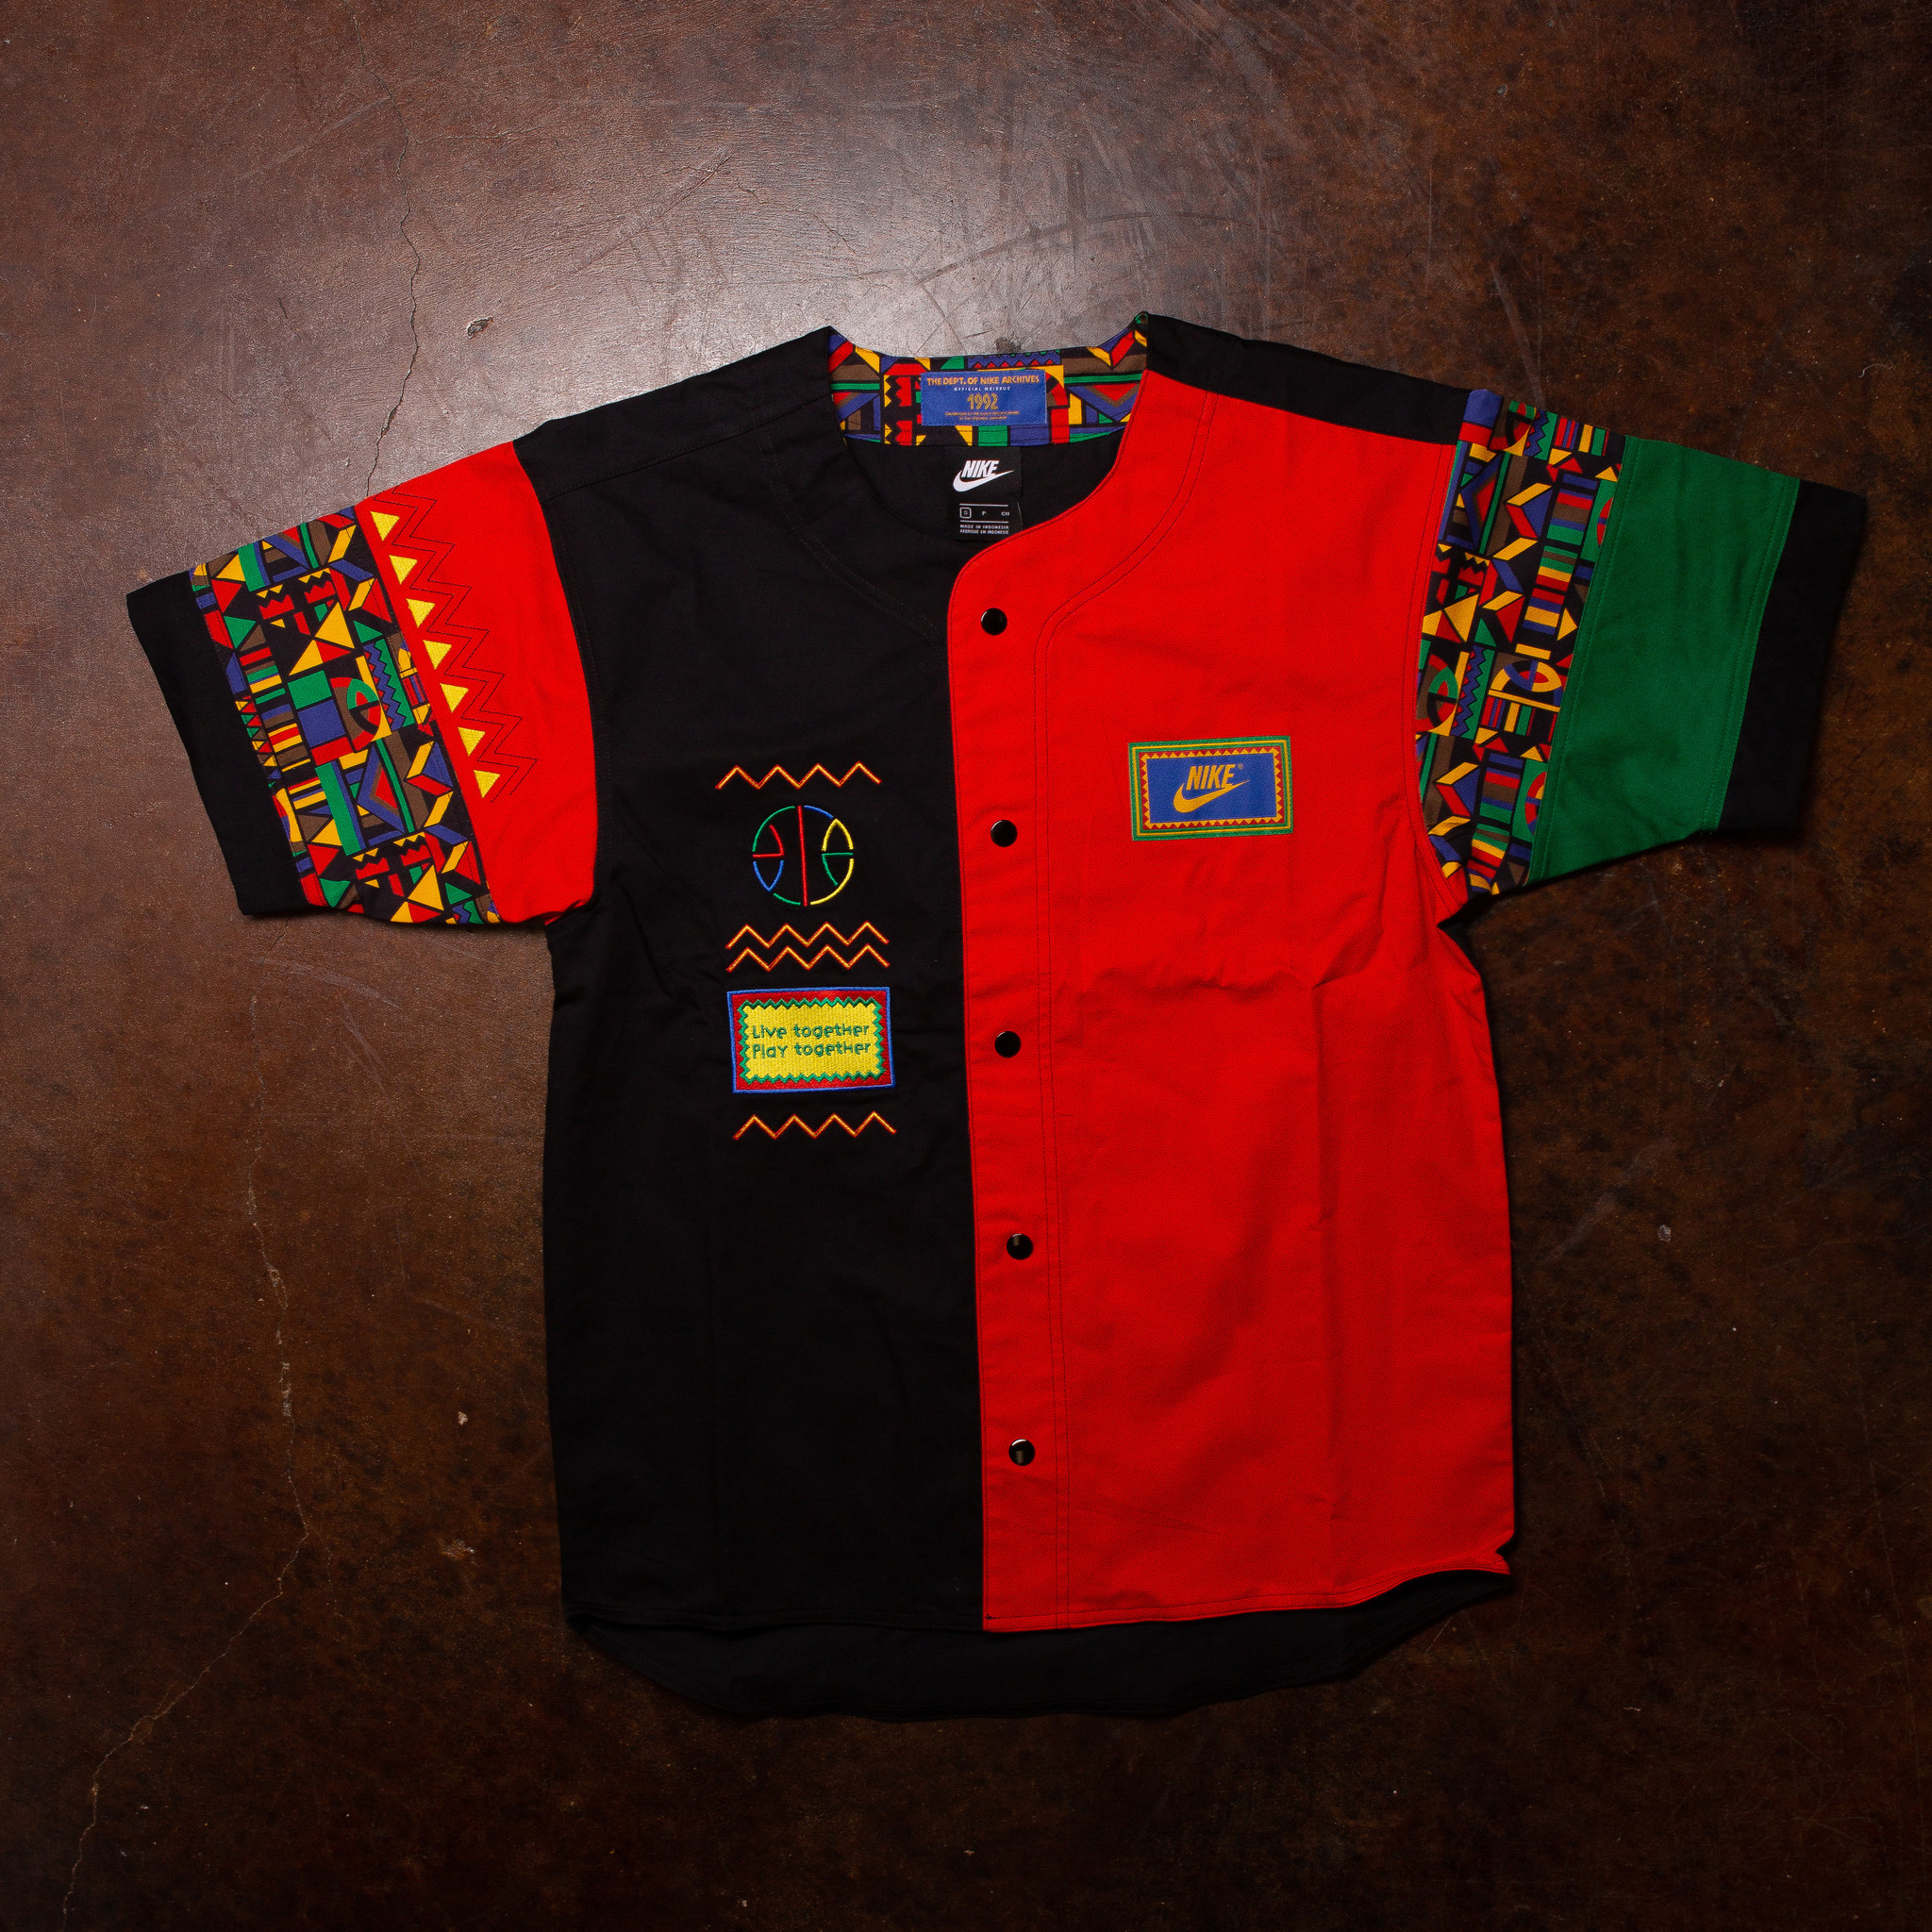 Nike Nike Button Up Urban Jungle Jersey Re-Issue